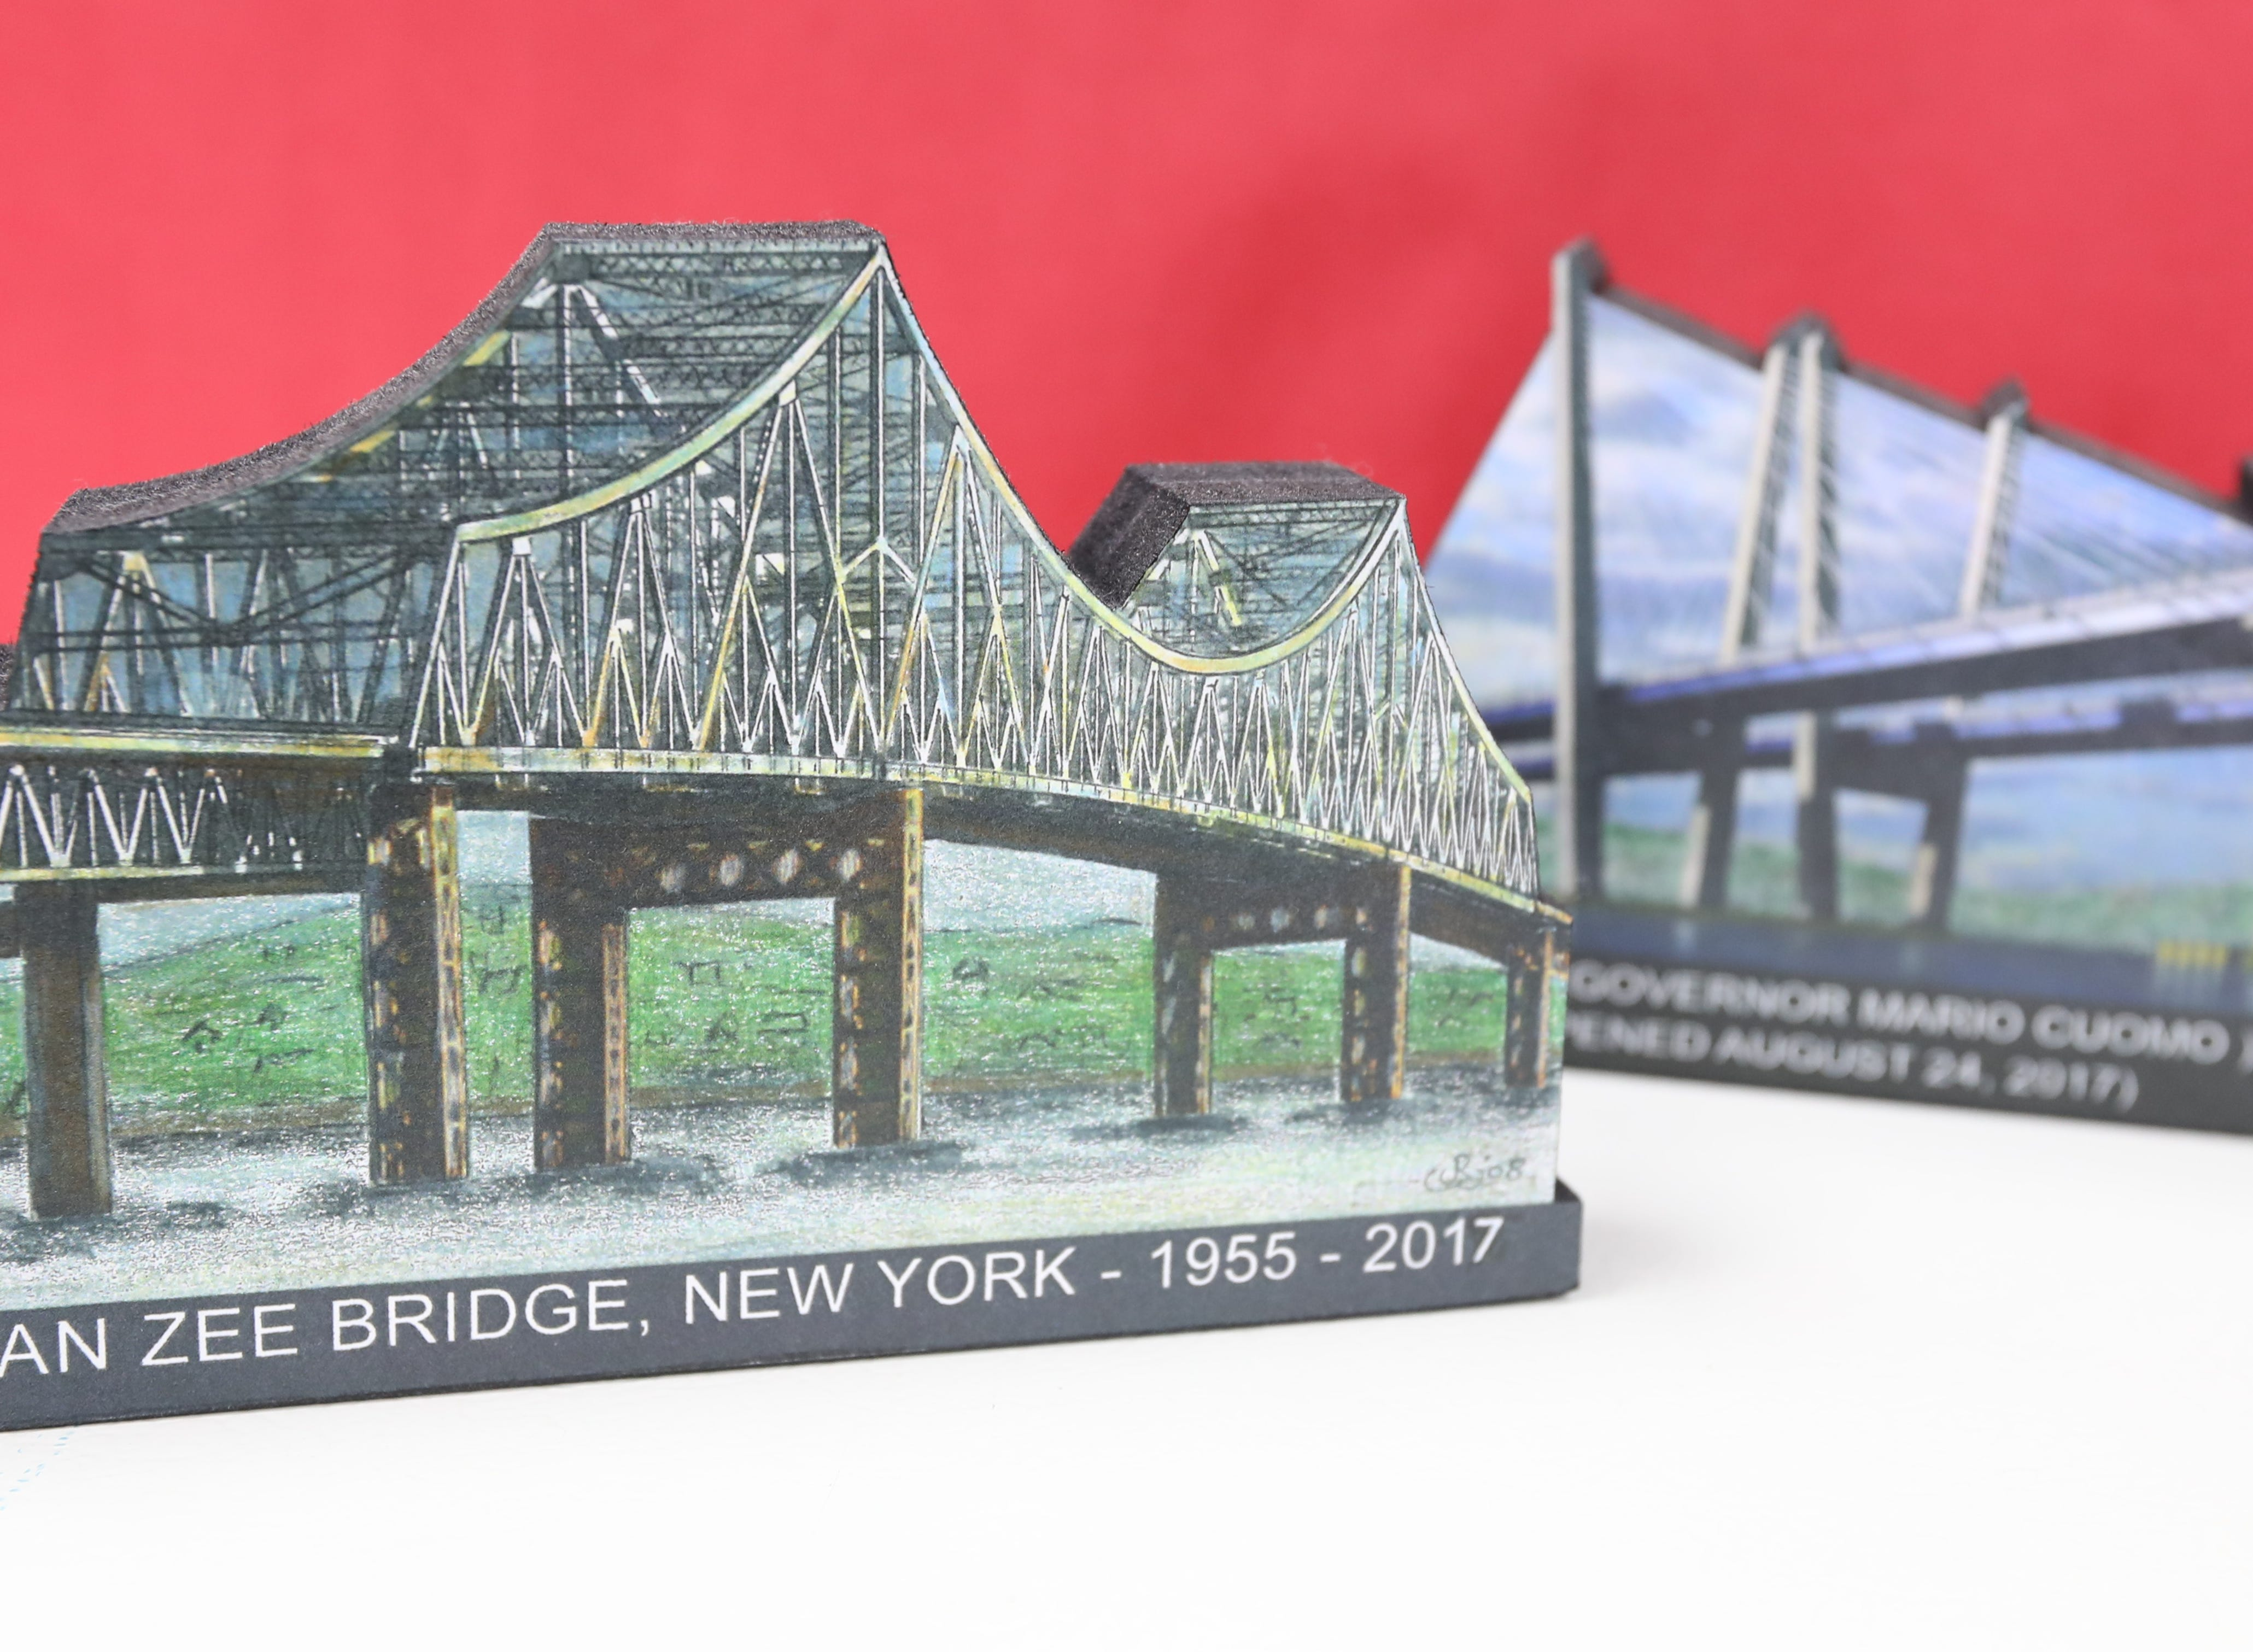 Woodblock miniatures of the Tappan Zee and Gov. Mario Cuomo bridges by John Rossi at Koblin's Pharmacy in Nyack Jan. 9, 2019.